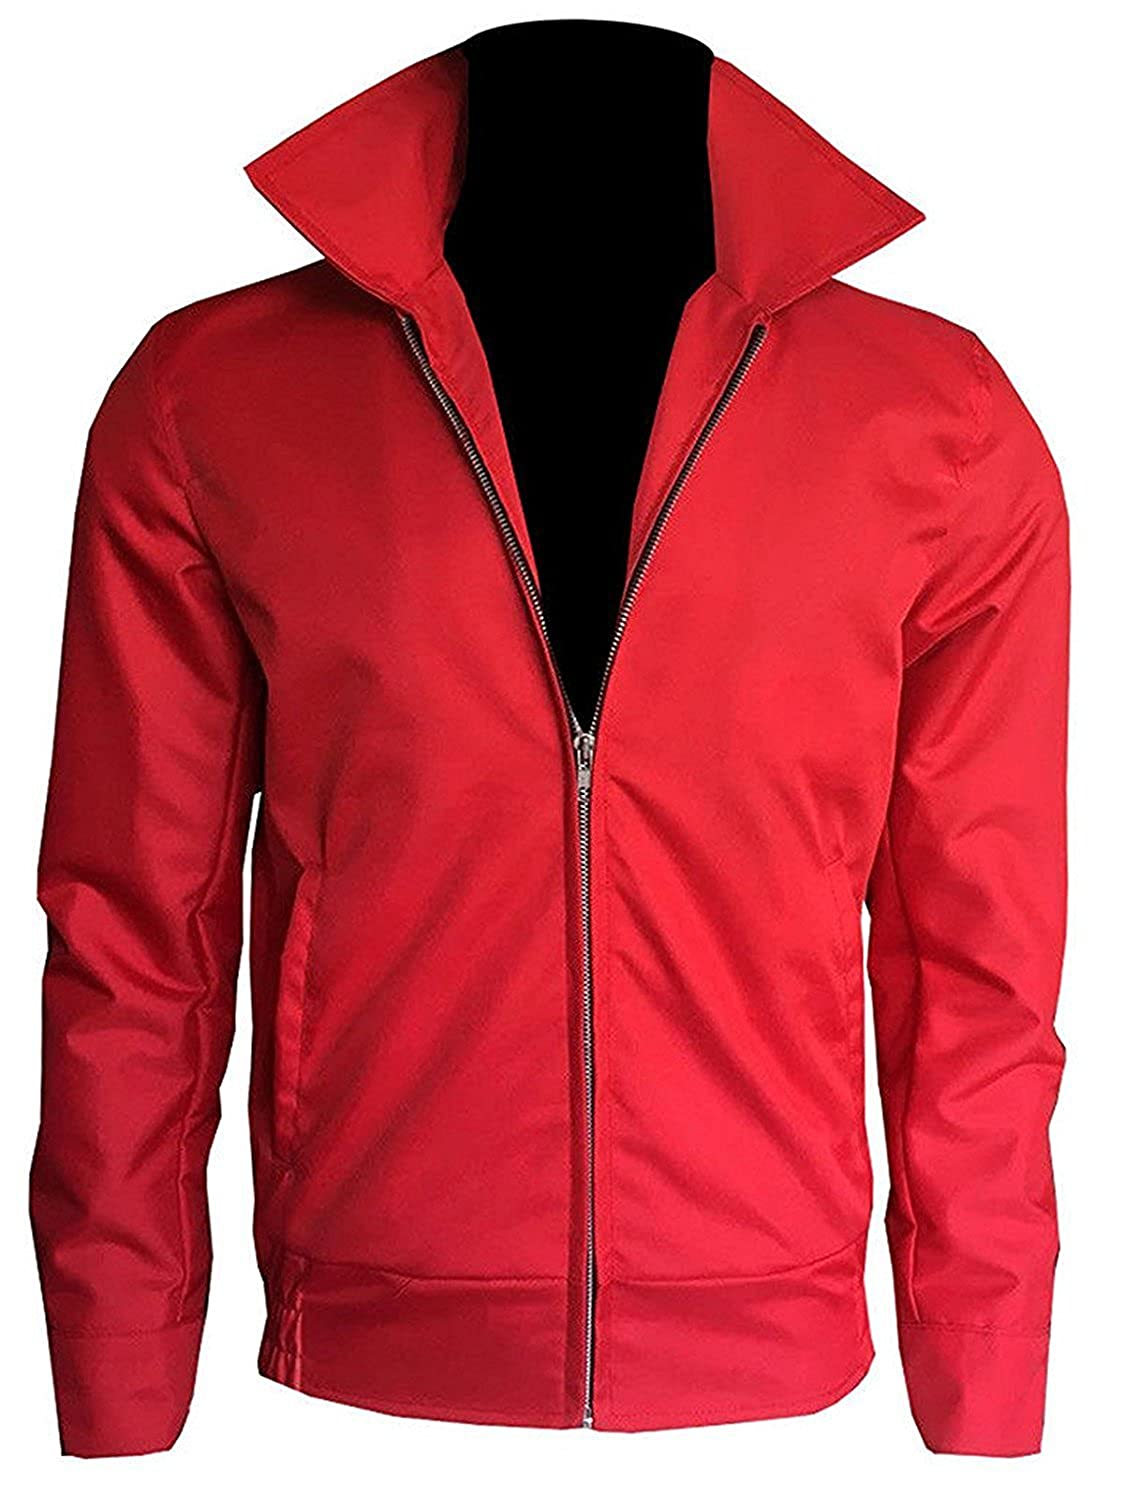 Classic Outfitters Rebel Without a Cause James Dean Red Cotton Jacket